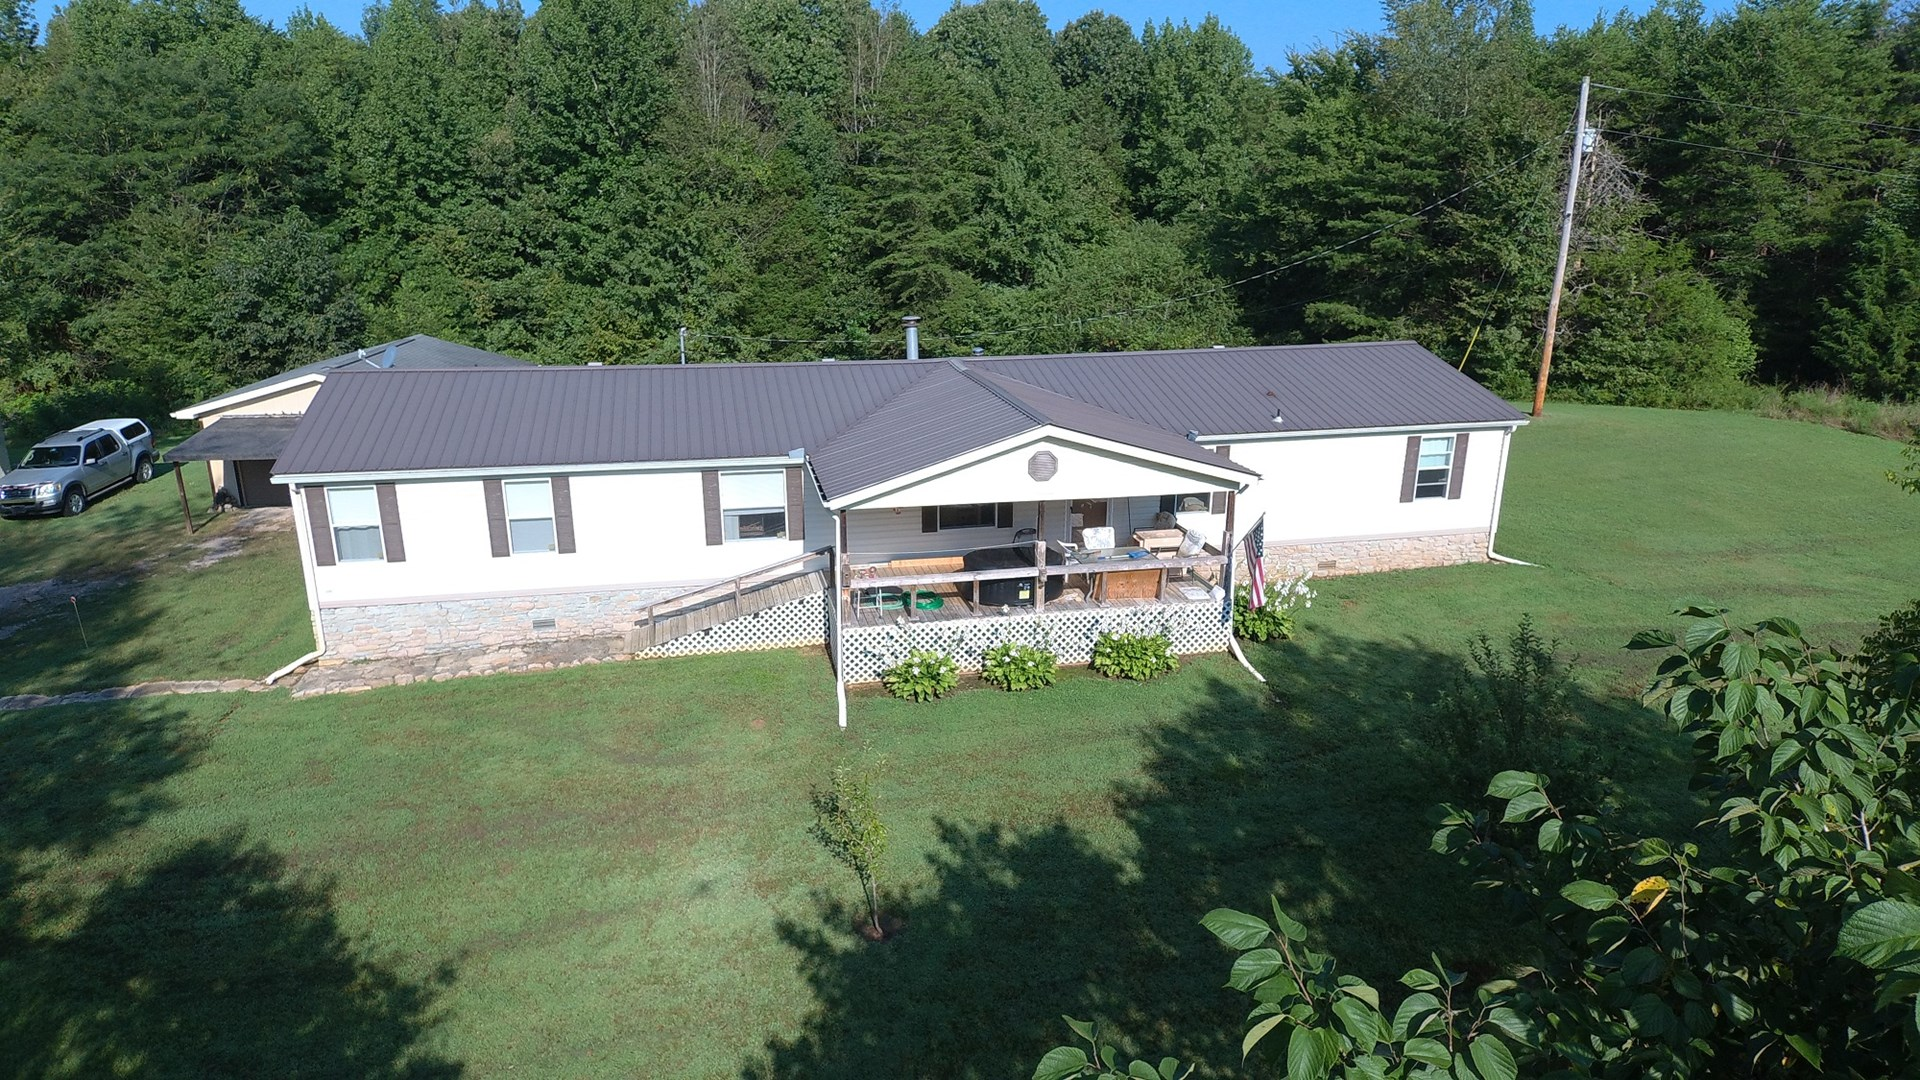 HOME NEAR TN RIVER,  FOR SALE IN WAYNE COUNTY